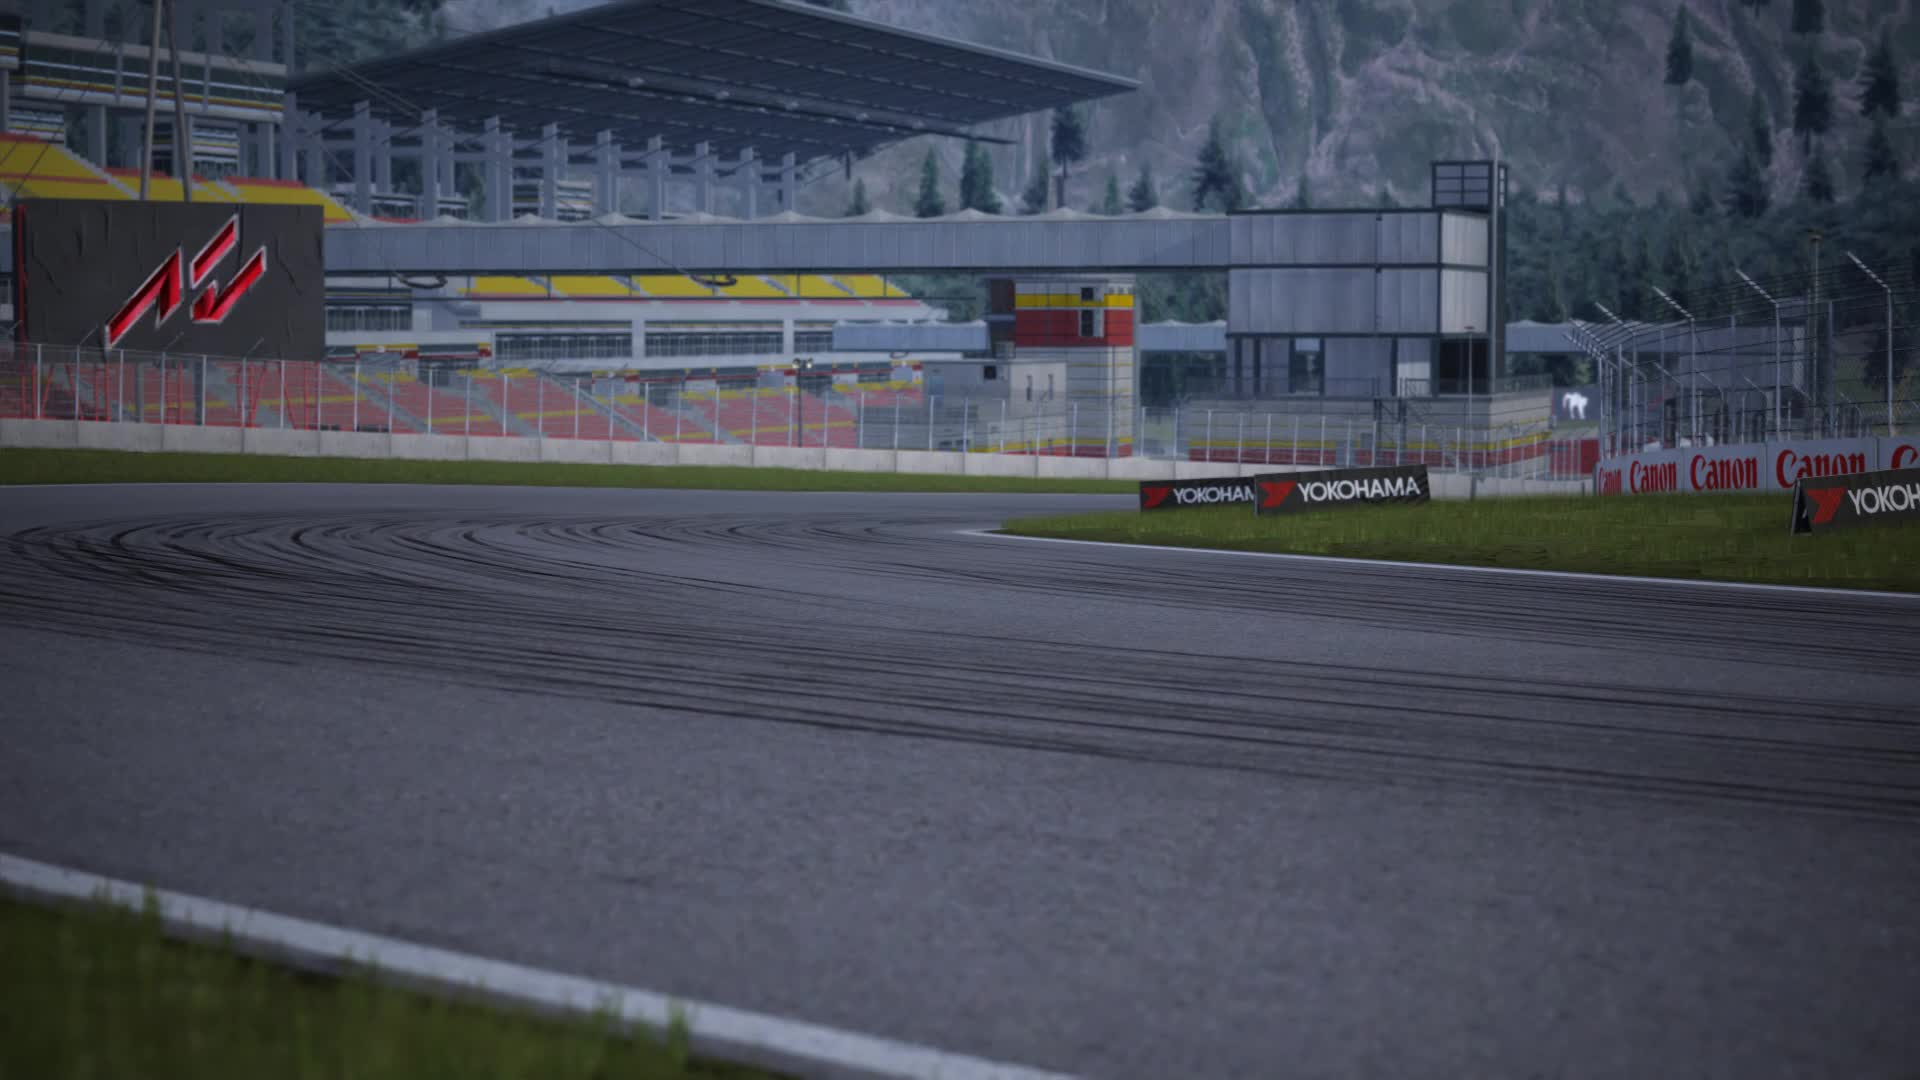 Assetto Corsa Mod Gifs Search | Search & Share on Homdor